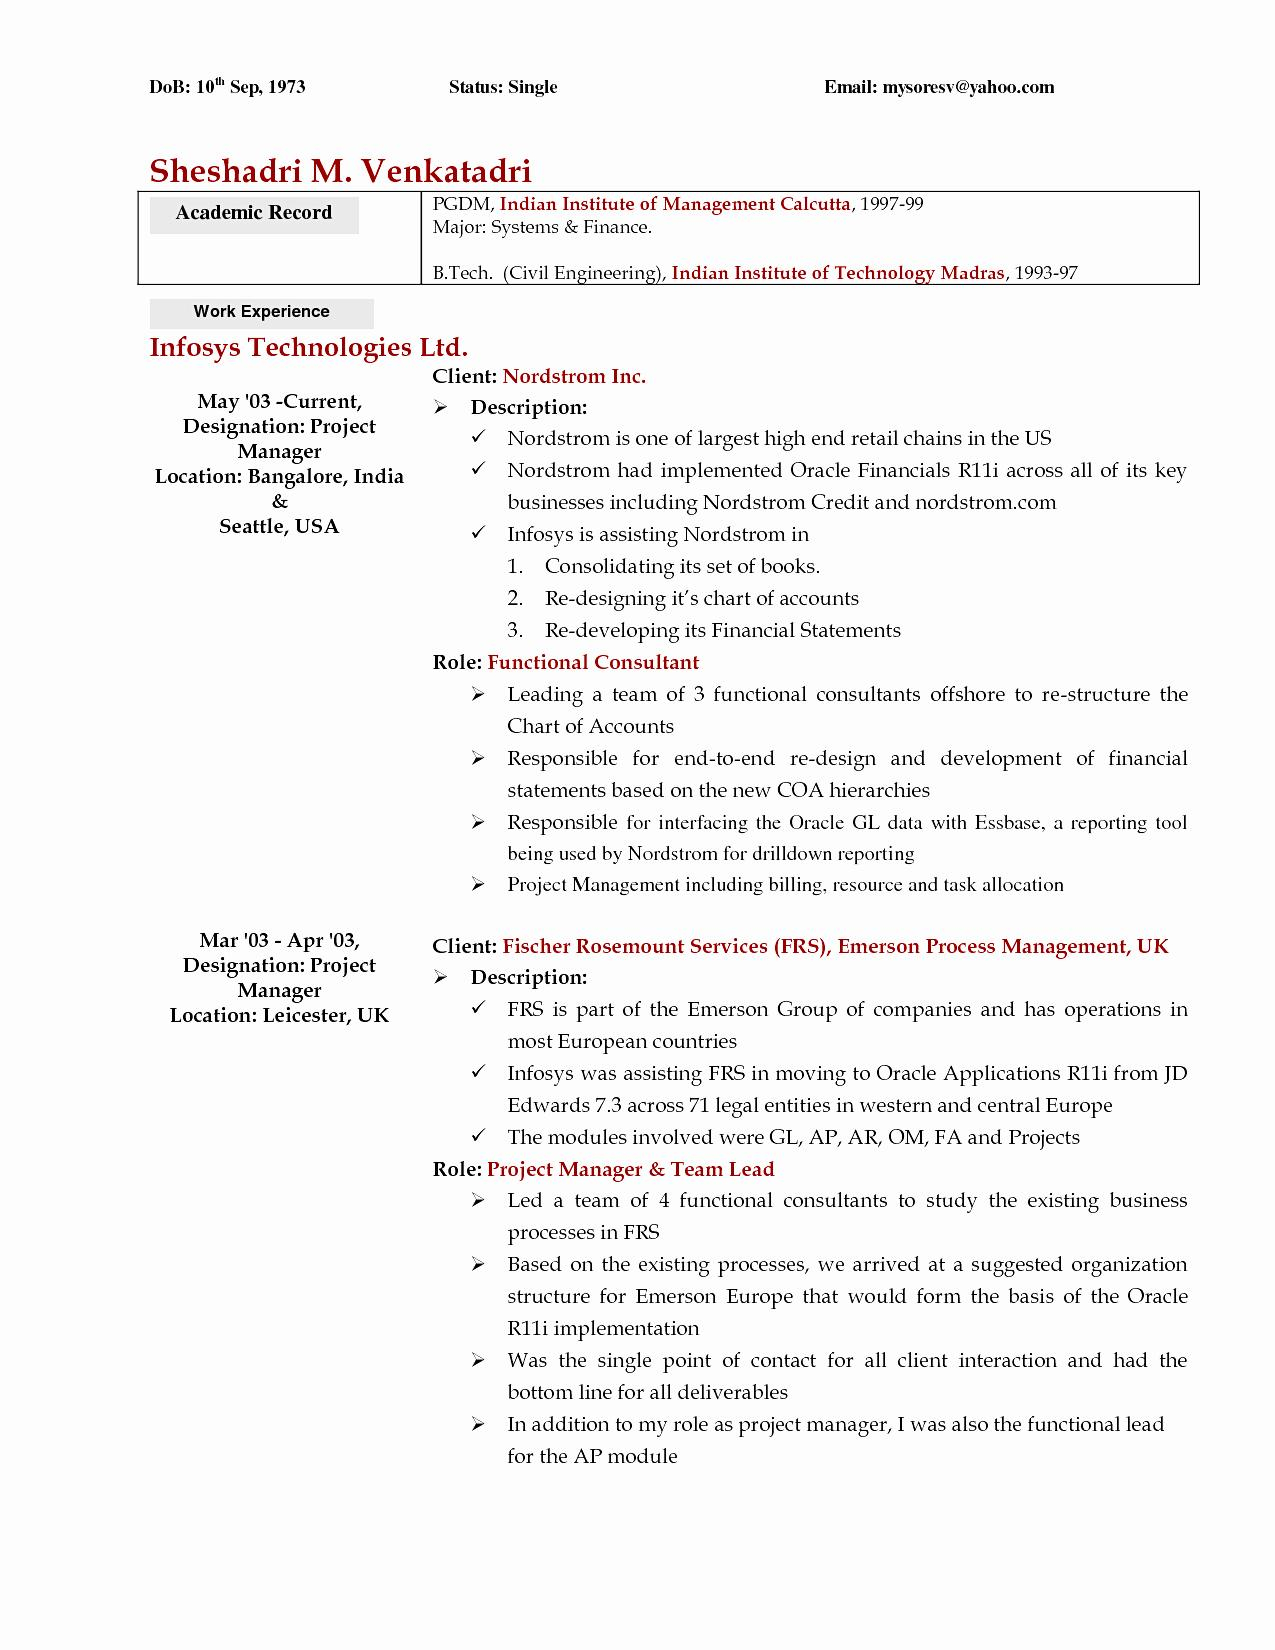 Civil Engineer Resume - Sample Resume Engineering Student Inspirational Civil Engineering